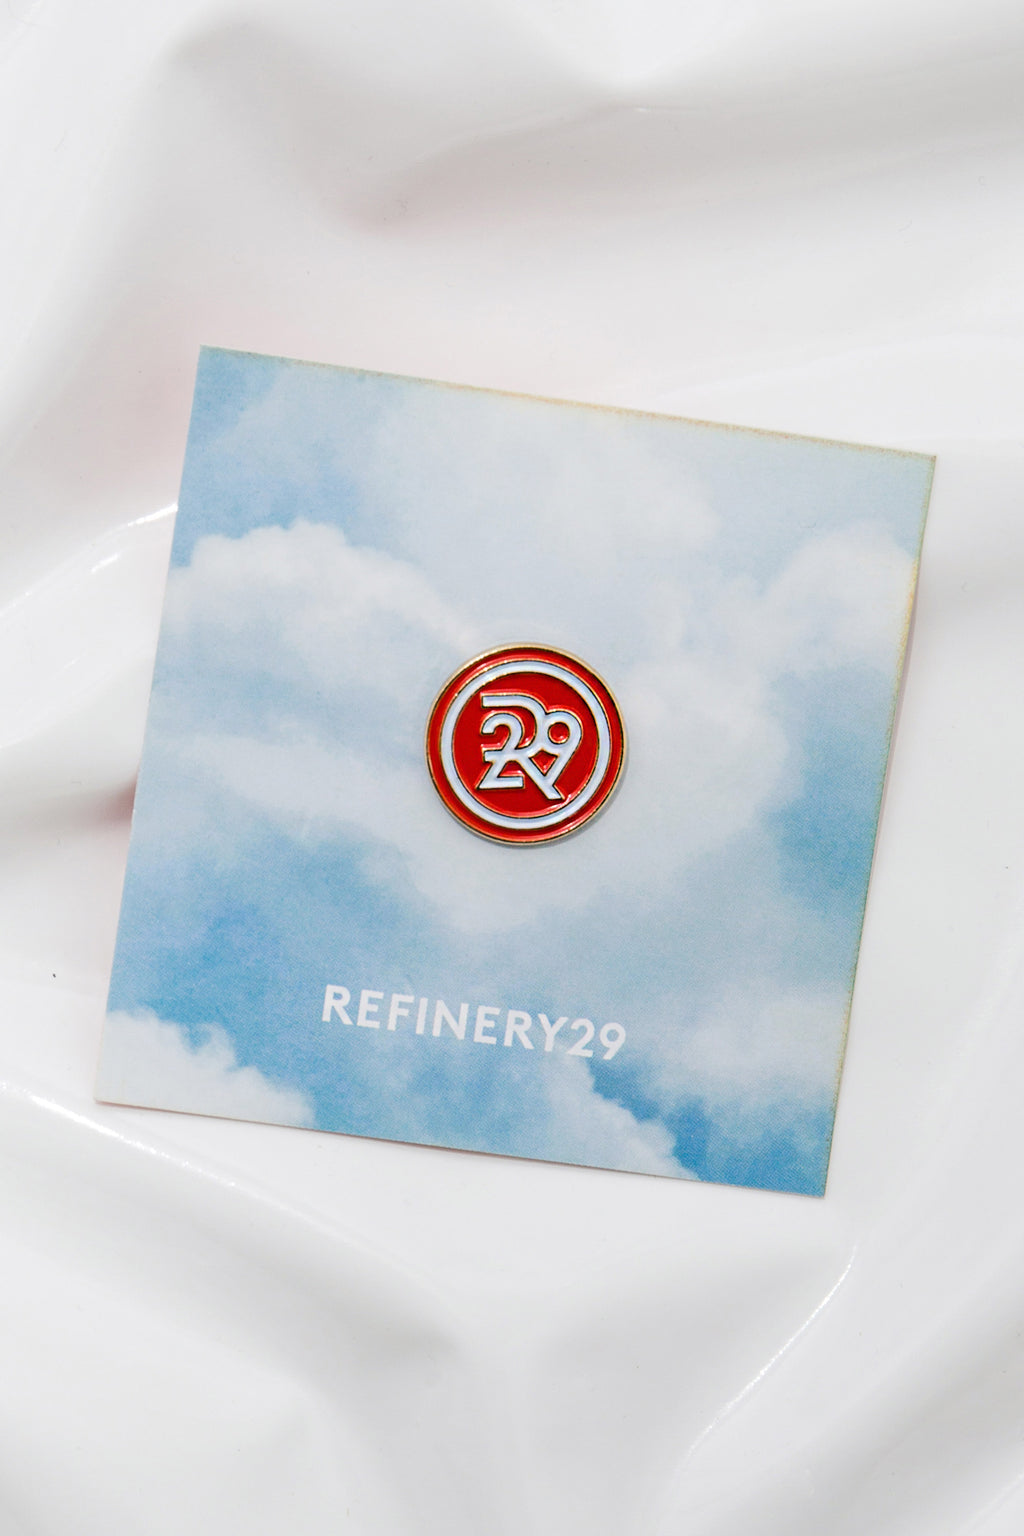 REFINERY29 PIN